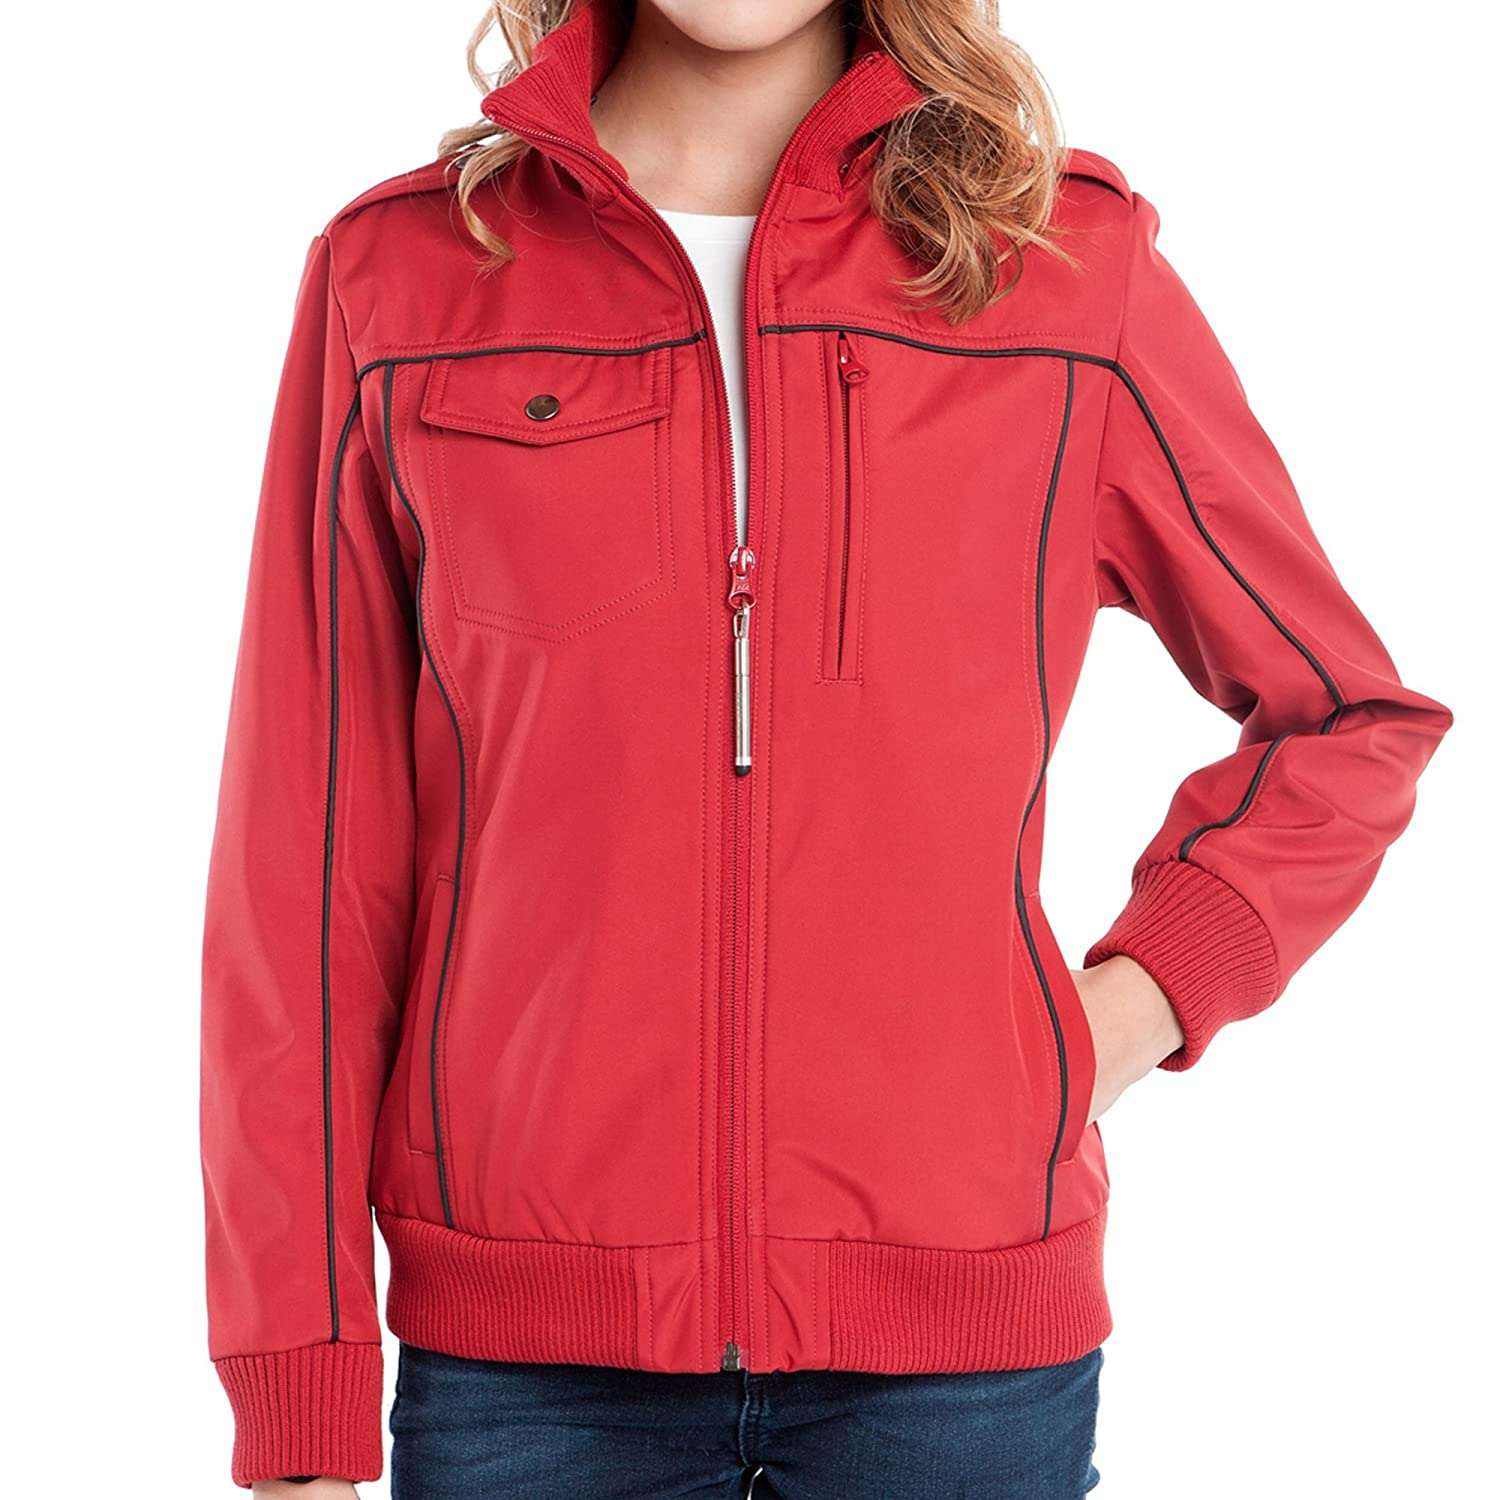 The Baubax Women's Bomber Travel Jacket travel product recommended by Anna Ransom on Lifney.